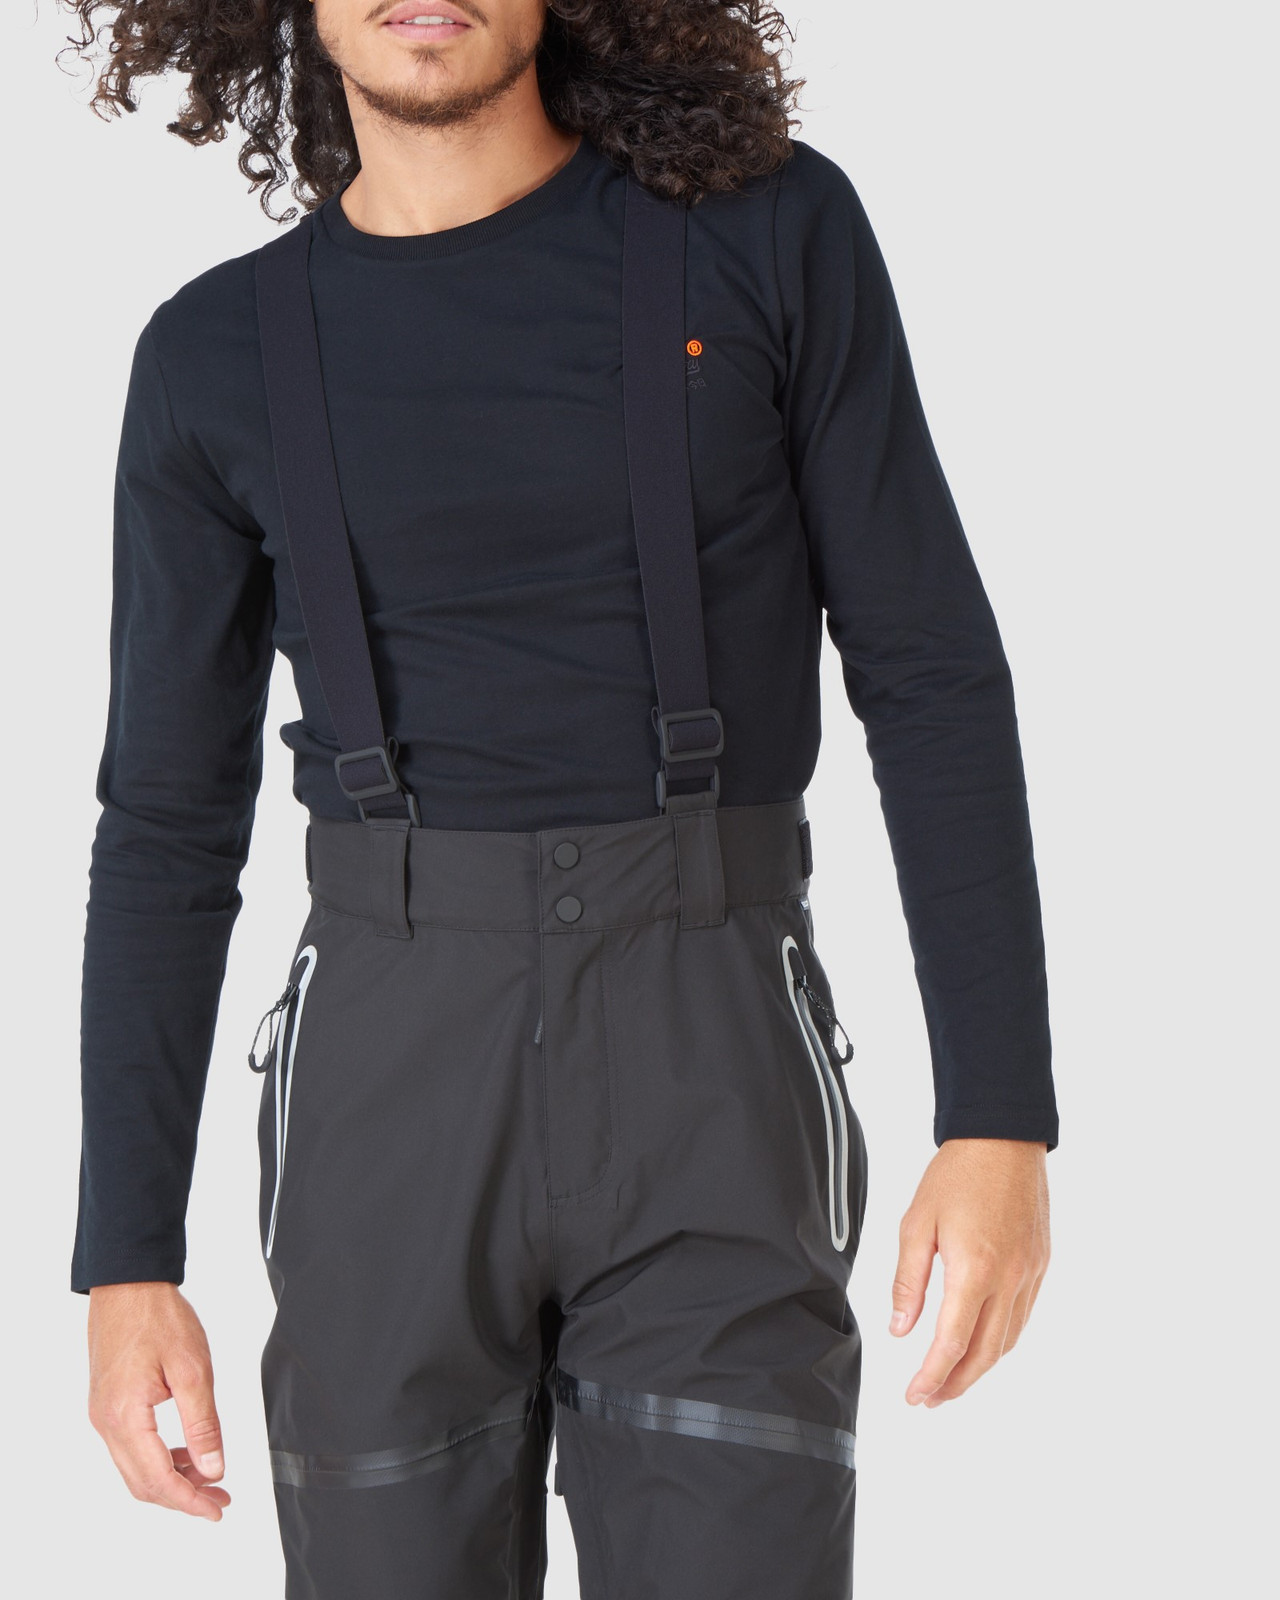 Superdry Mens EXPEDITION SHELL PANT Black Snow Pants 9